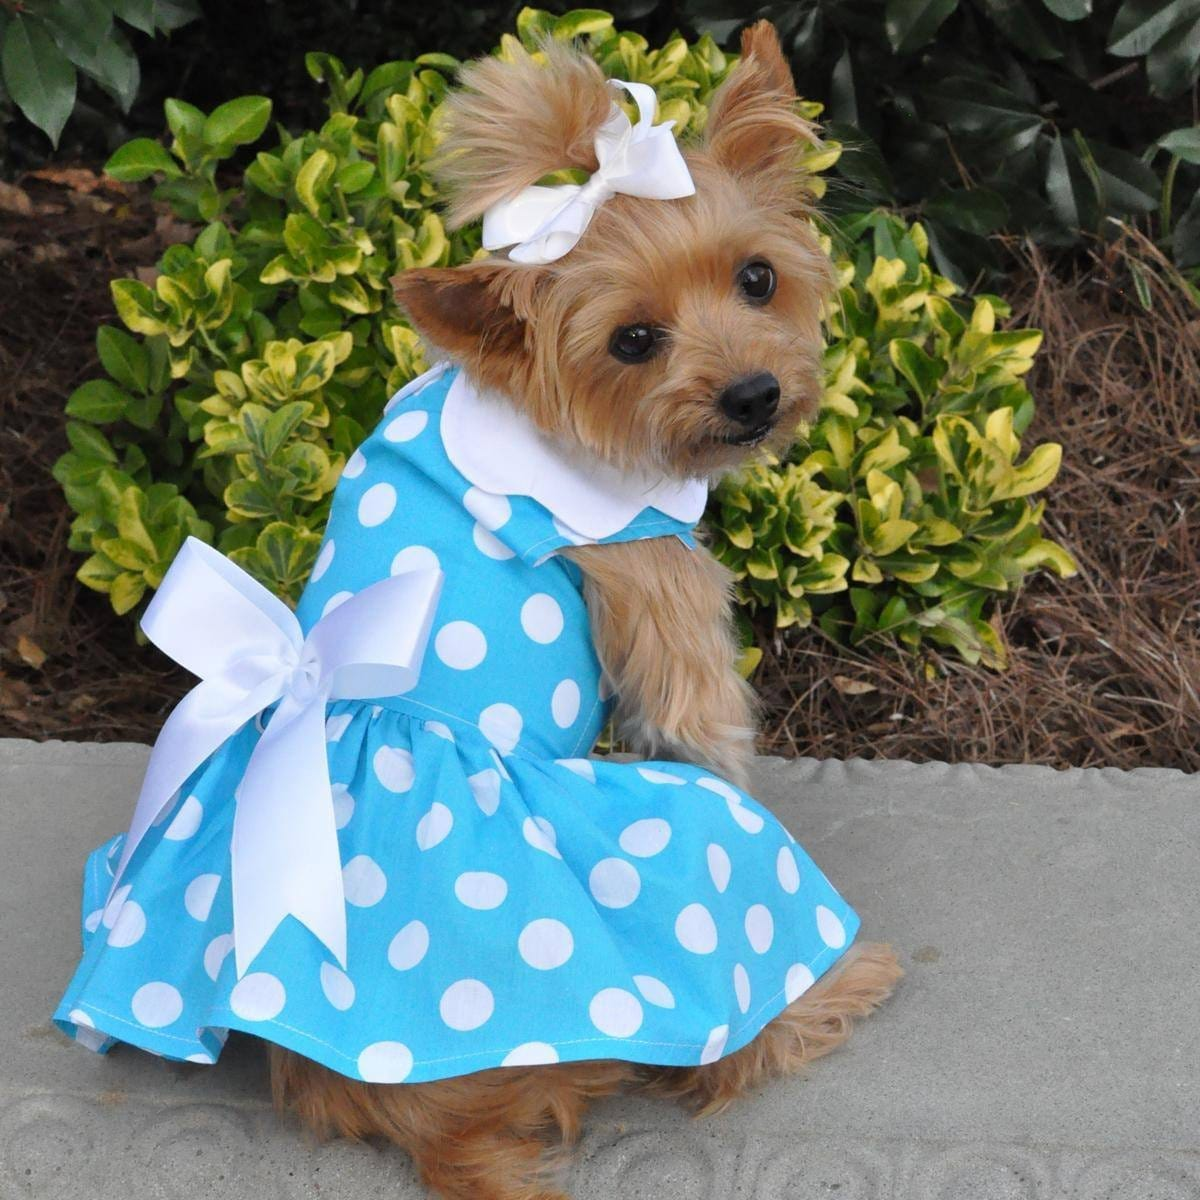 Apparel - Blue Polka Dot Dog Dress With Matching Leash dd8e50dbe